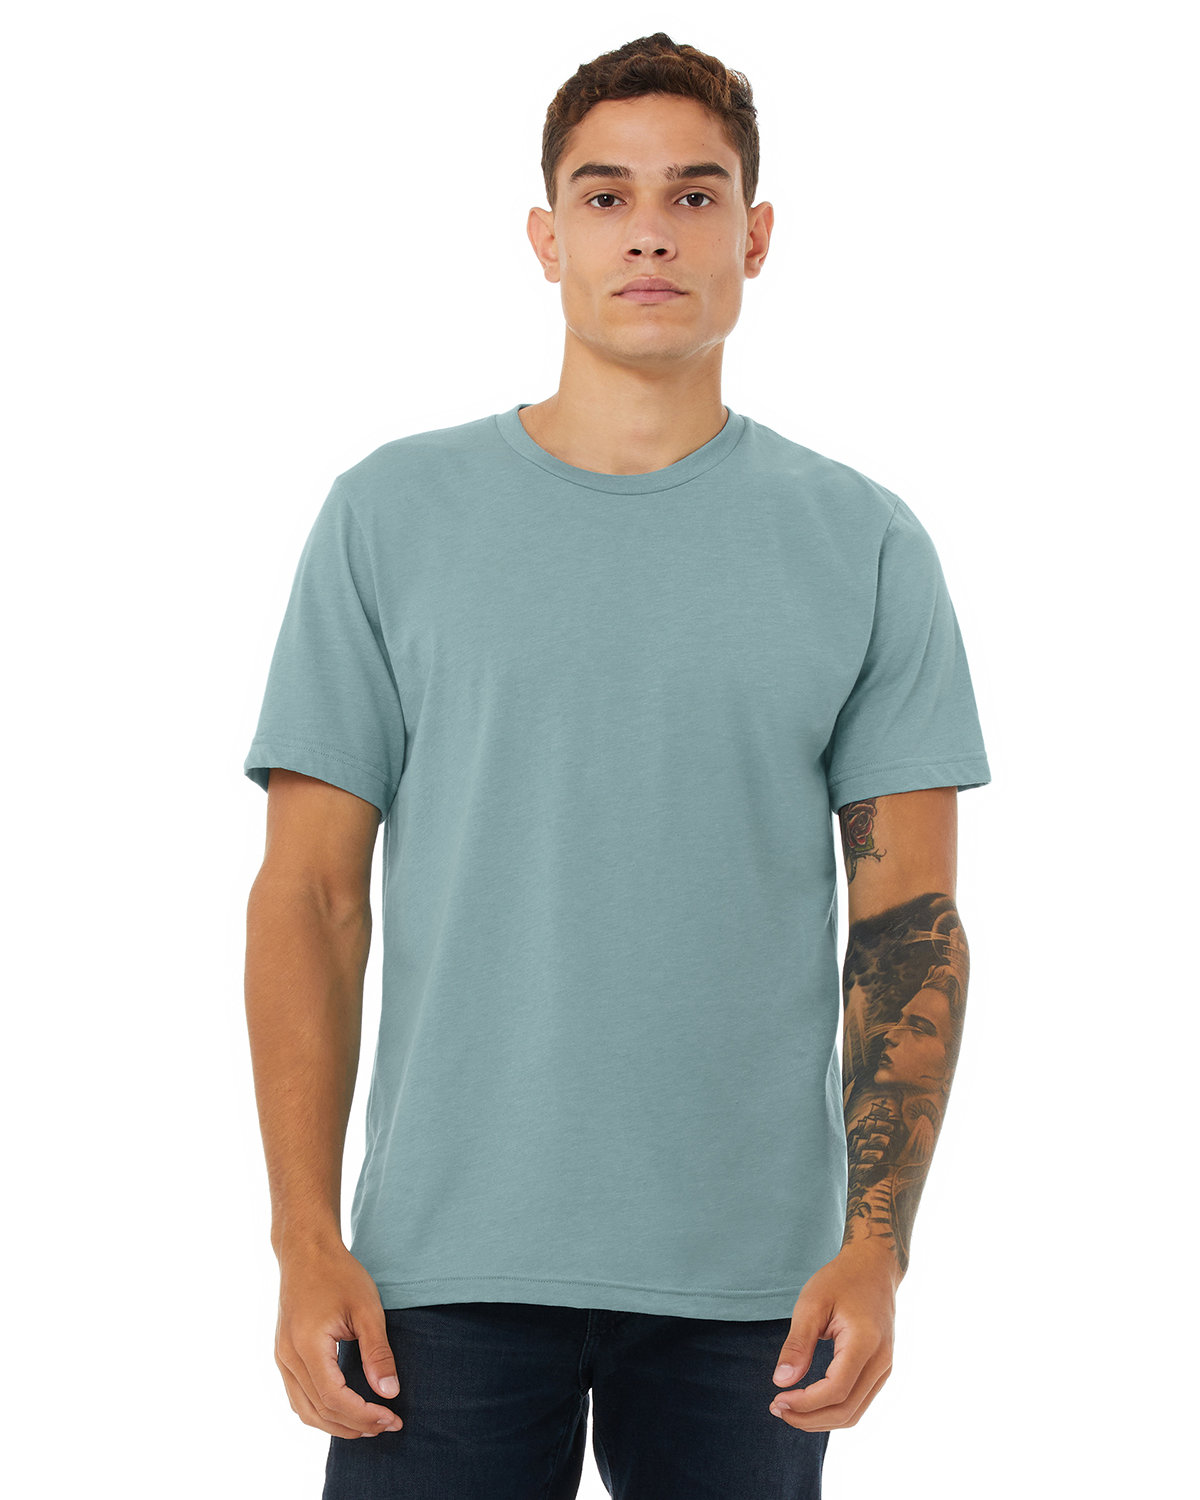 Bella + Canvas Unisex Heather CVC T-Shirt HTHR BLUE LAGOON